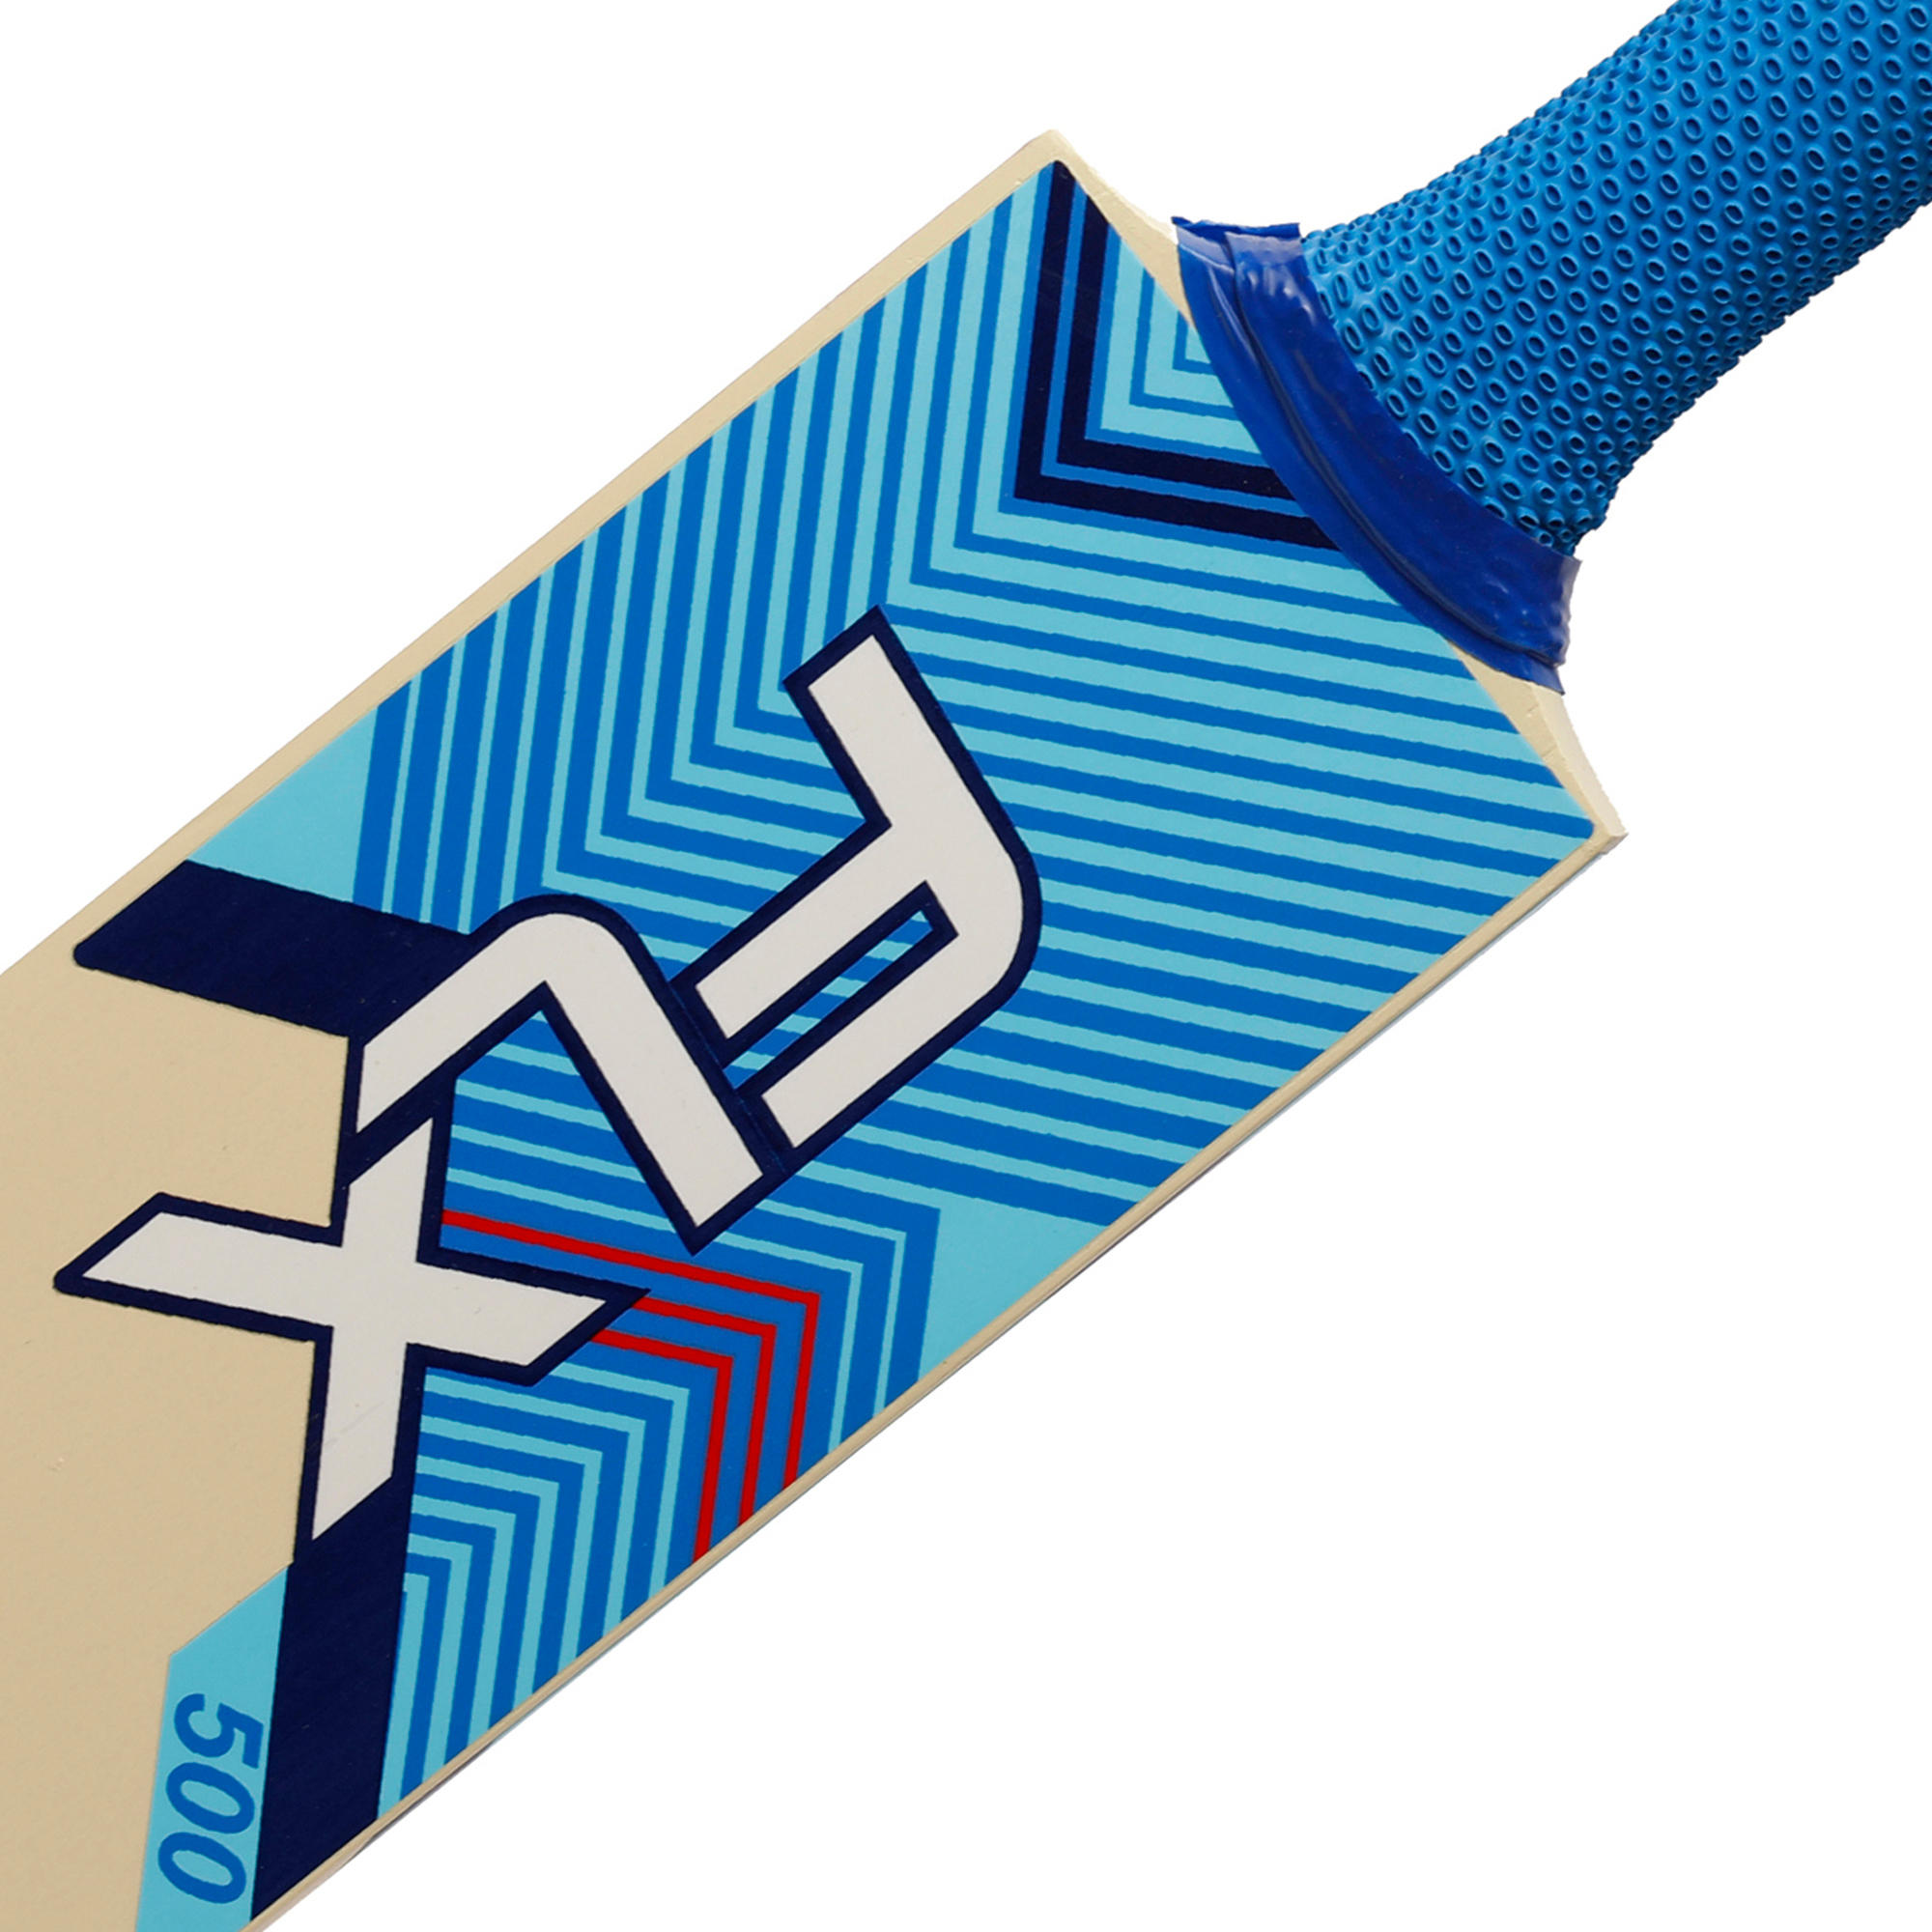 FLX T500 Cricket Bat for Soft Tennis Ball, Blue - Youth/Adults